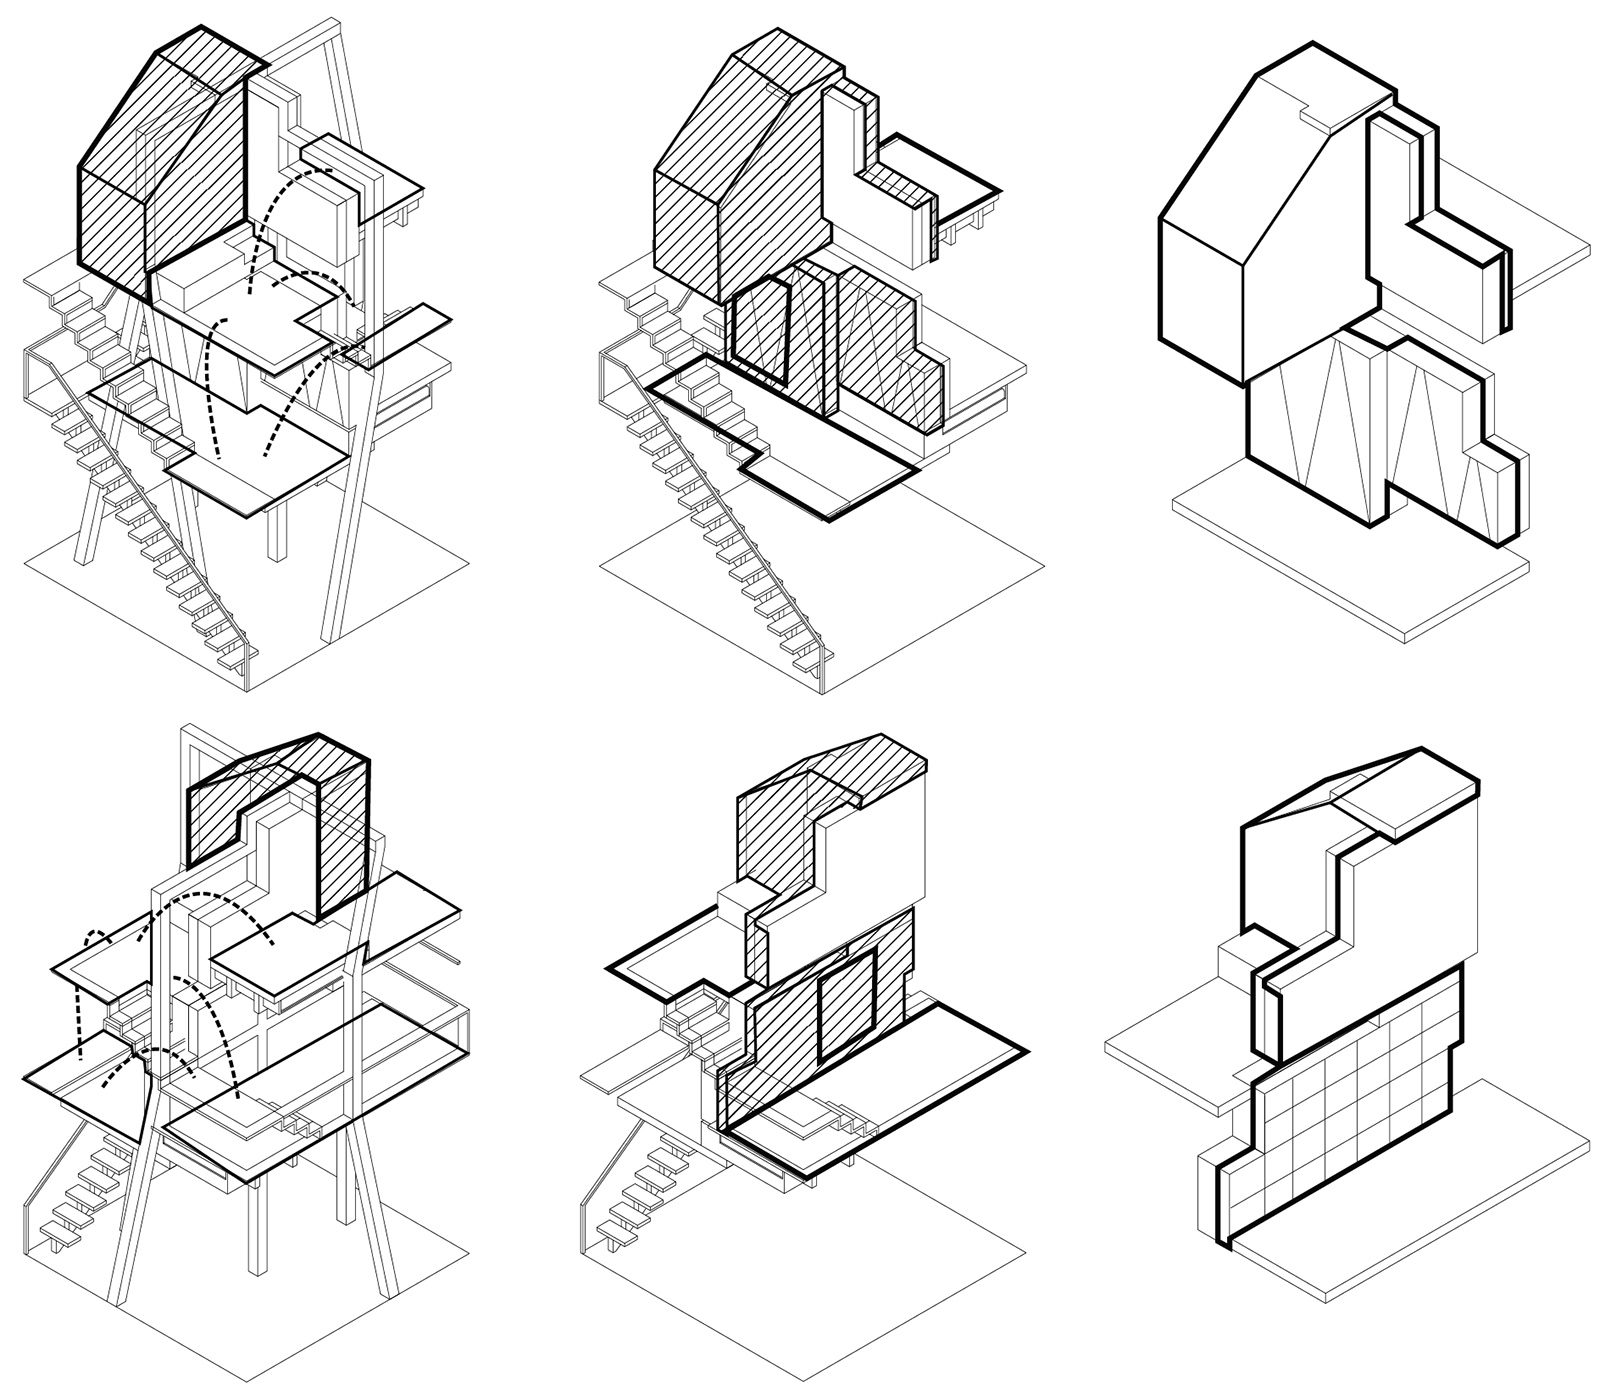 Series of function diagrams of the CTST housing units showing the rooms, shelving, and circulation